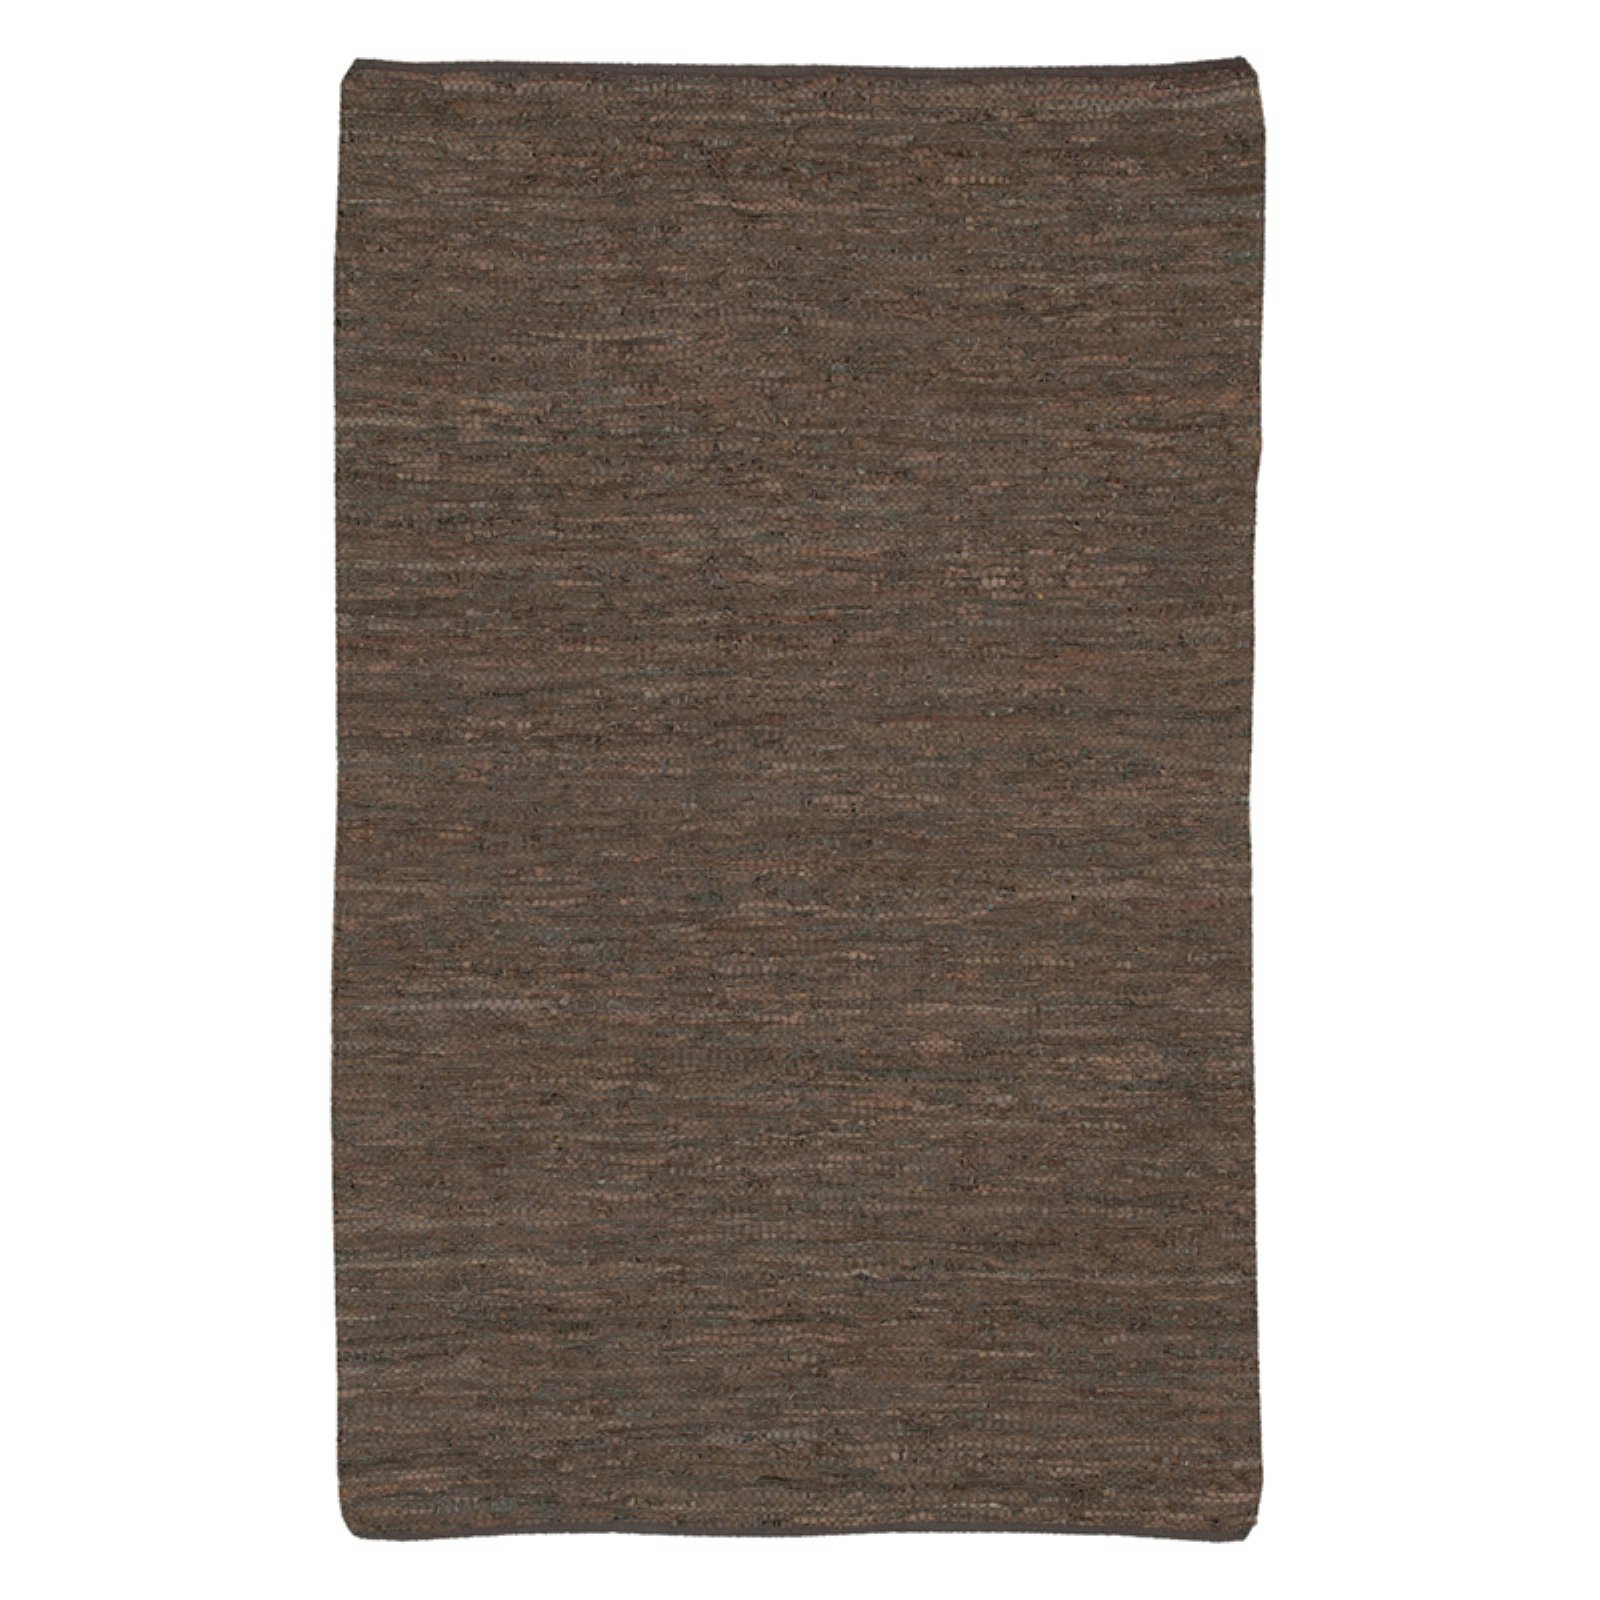 Chandra Saket SAK370 Indoor Area Rug